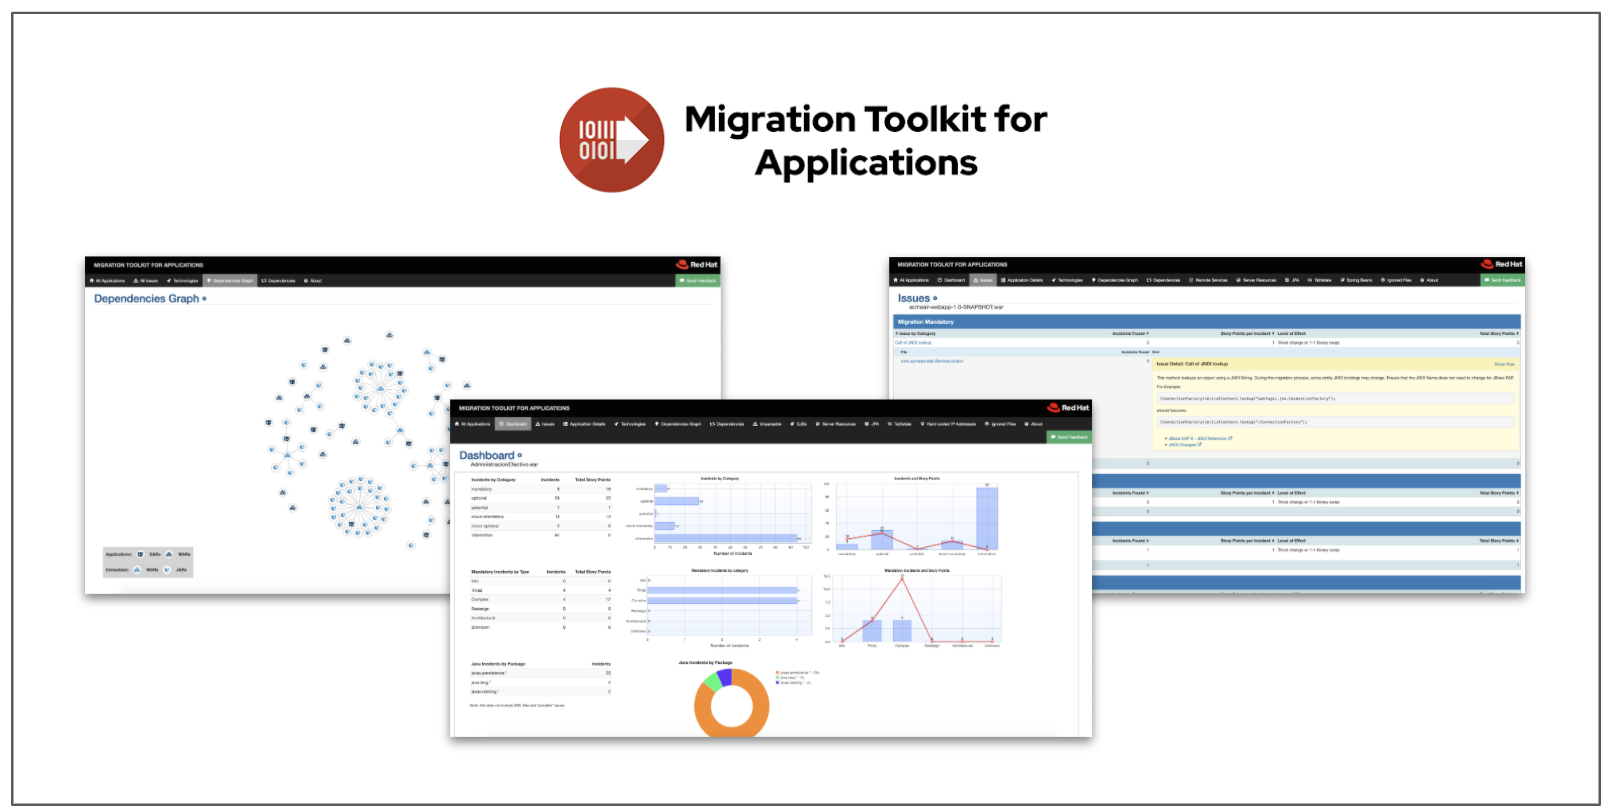 Migrate your Java apps to containers with Migration Toolkit for Applications 5.0